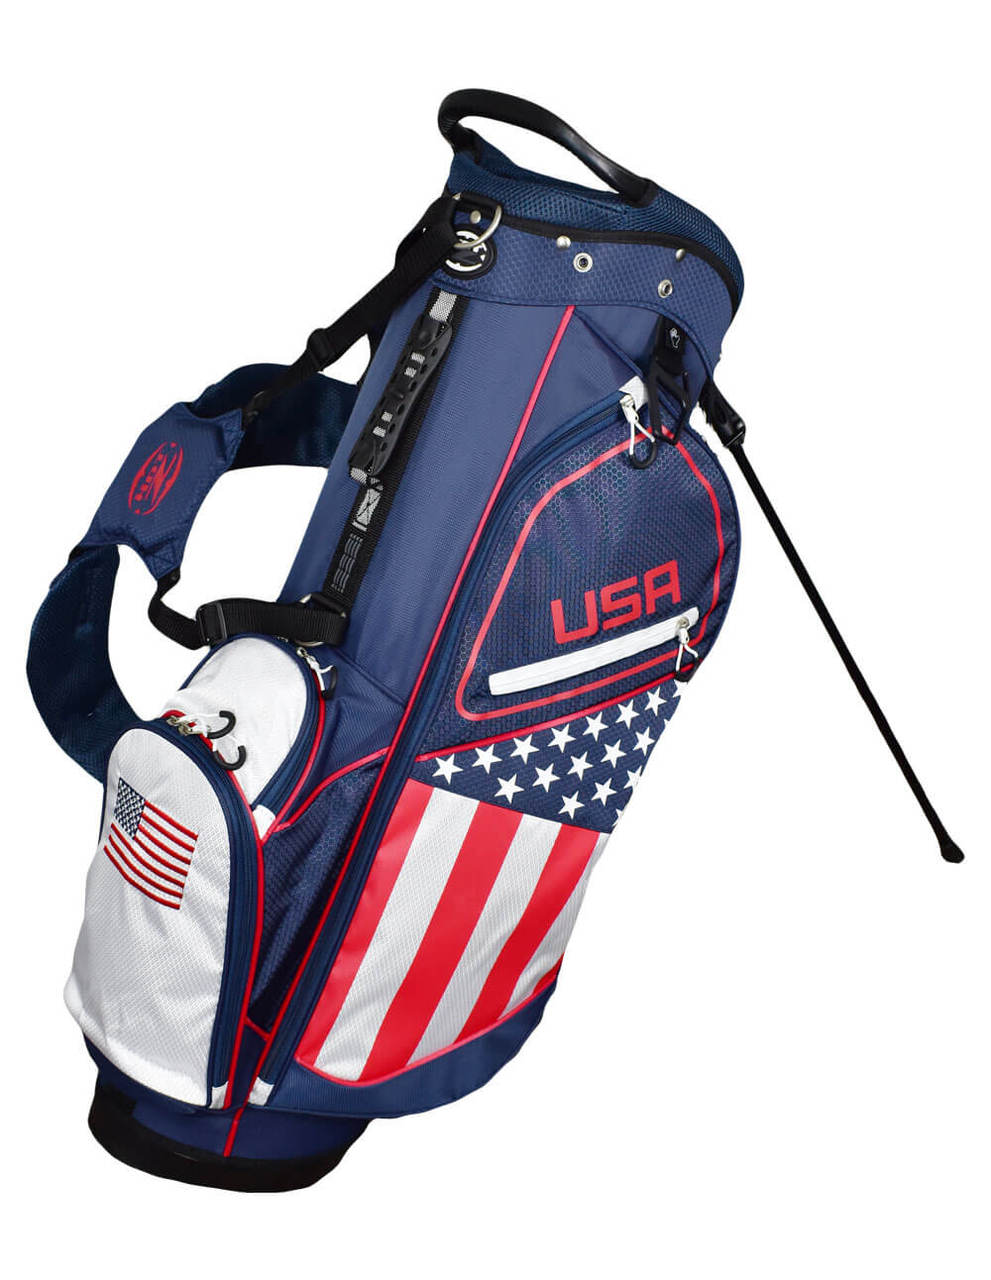 Hot-Z 2020 Flag Stand Bag USA